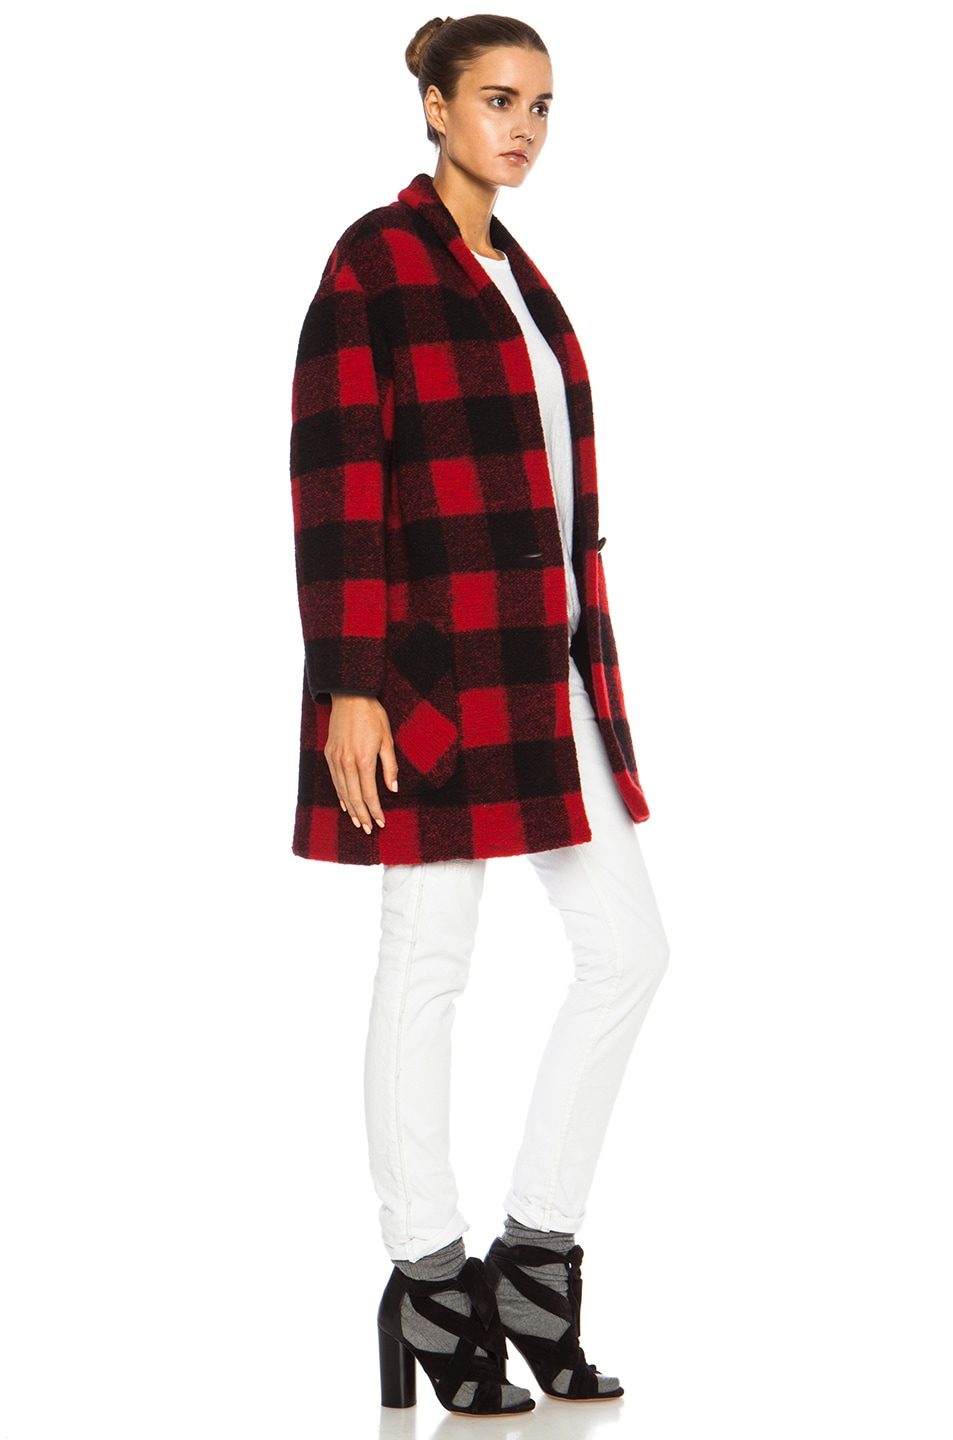 Isabel Marant Etoile Gabrie Check Wool-Blend Jacket in Black & Red